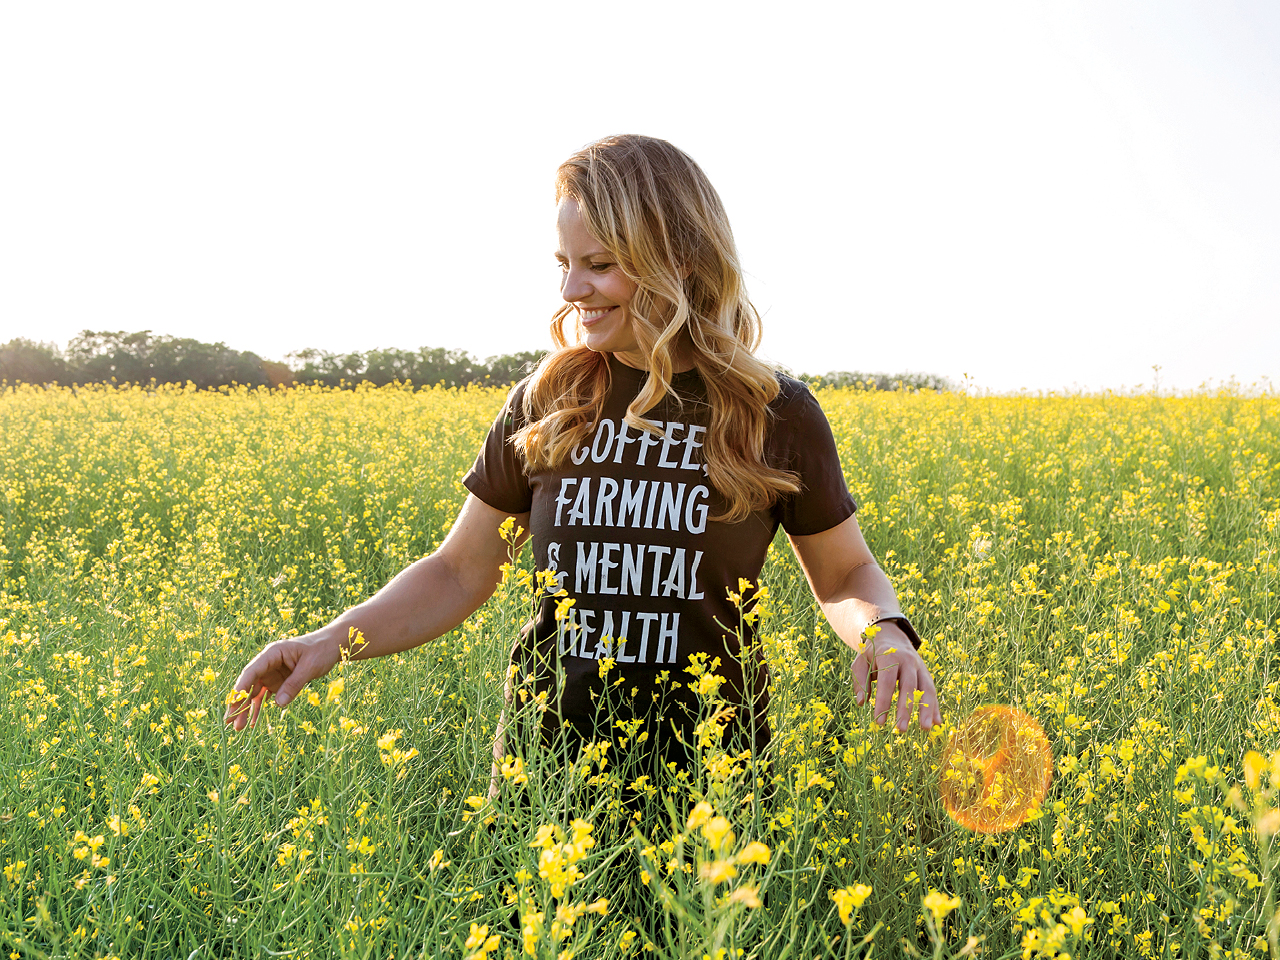 Lesley Kelly stands in a field of flowers, her shirt says 'Coffee, Farming and Mental Health'